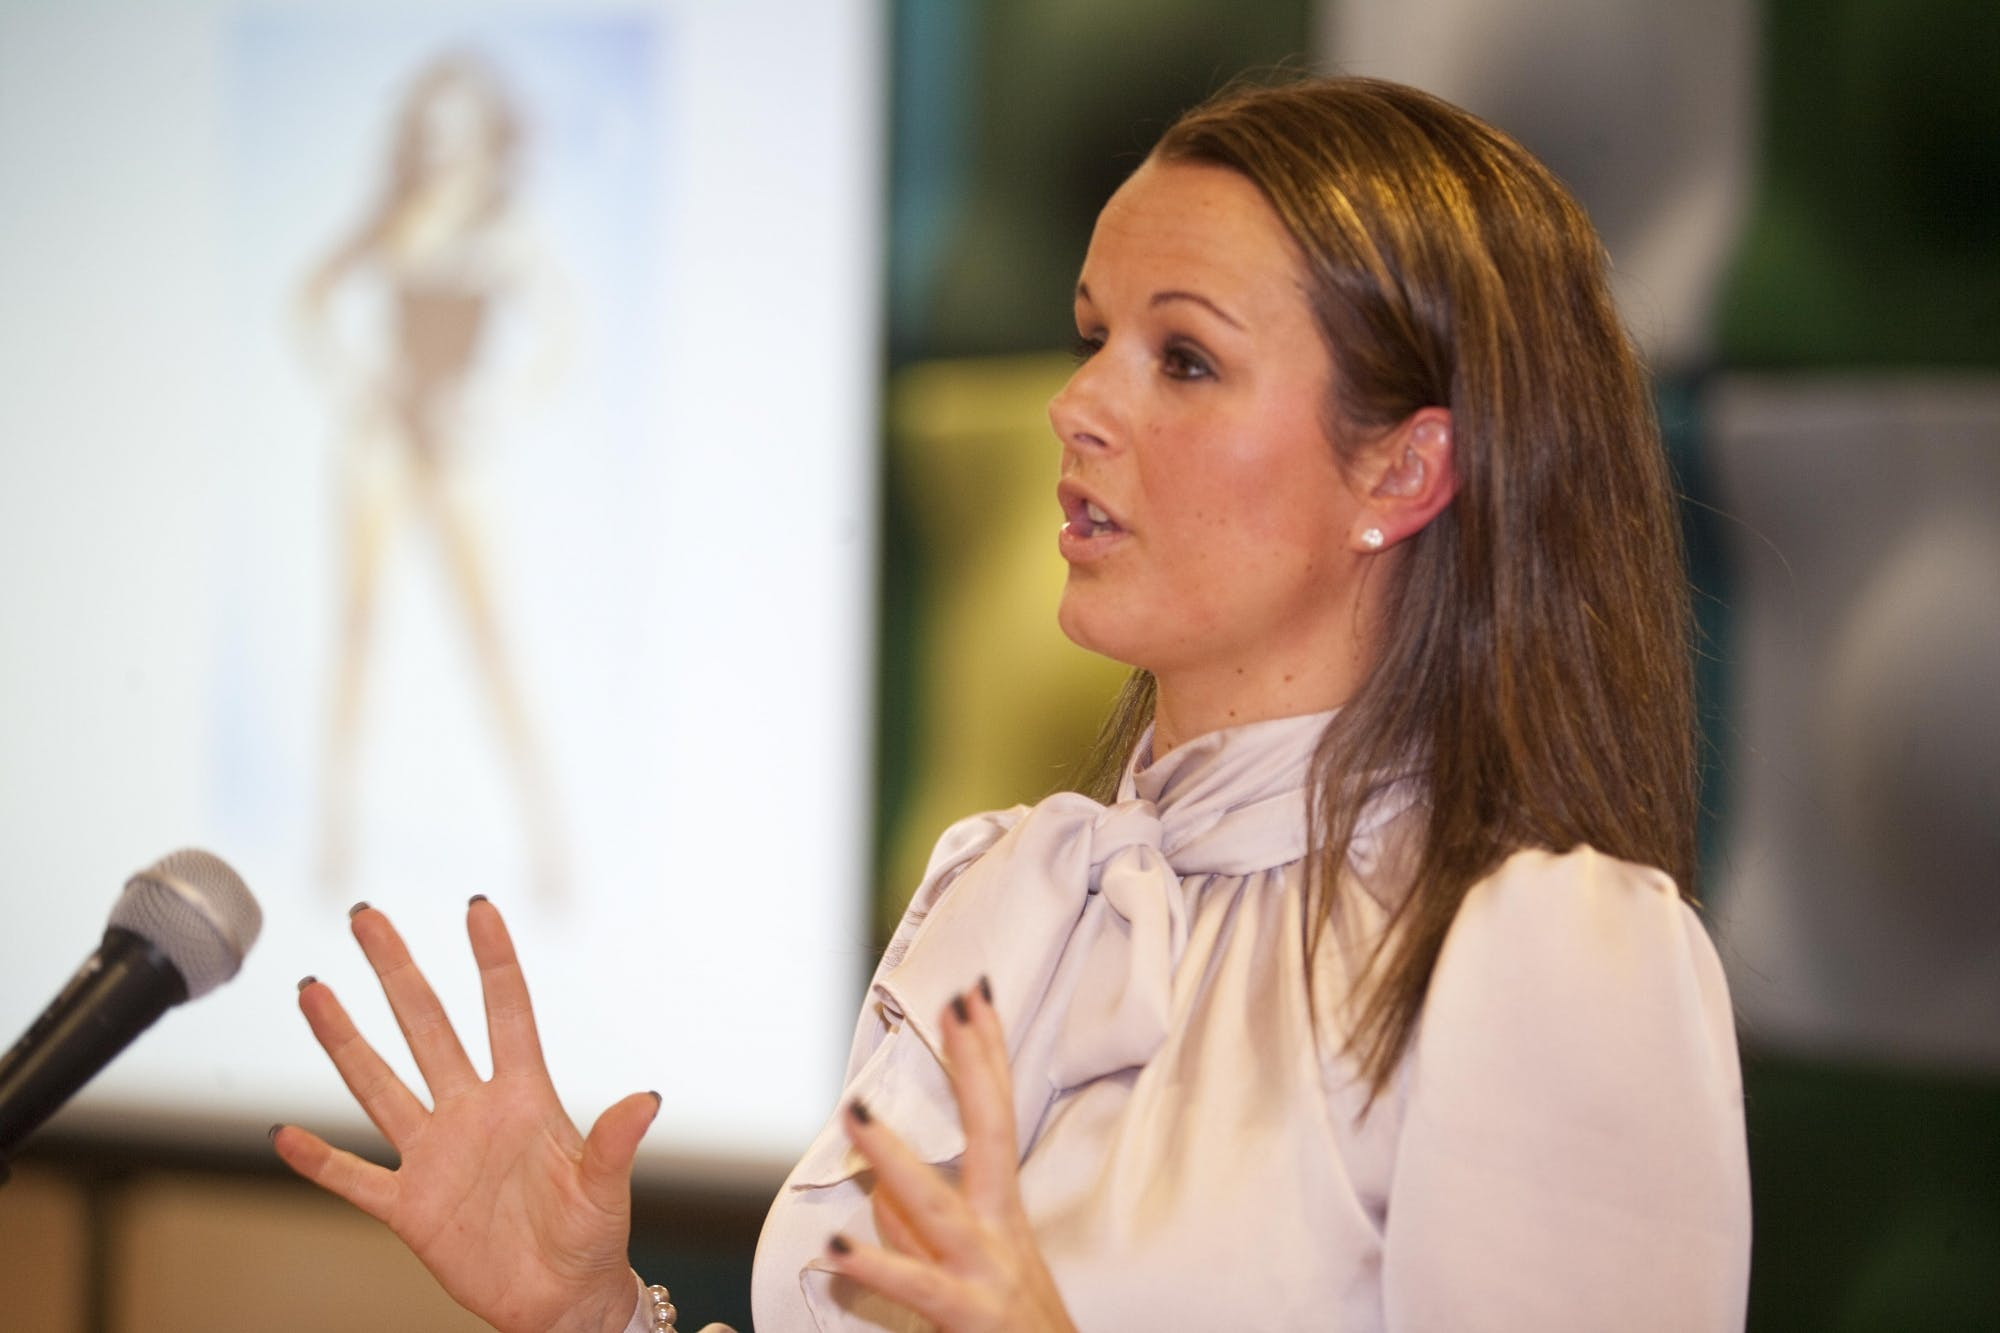 Claire speaking at a  'Forward Ladies' event